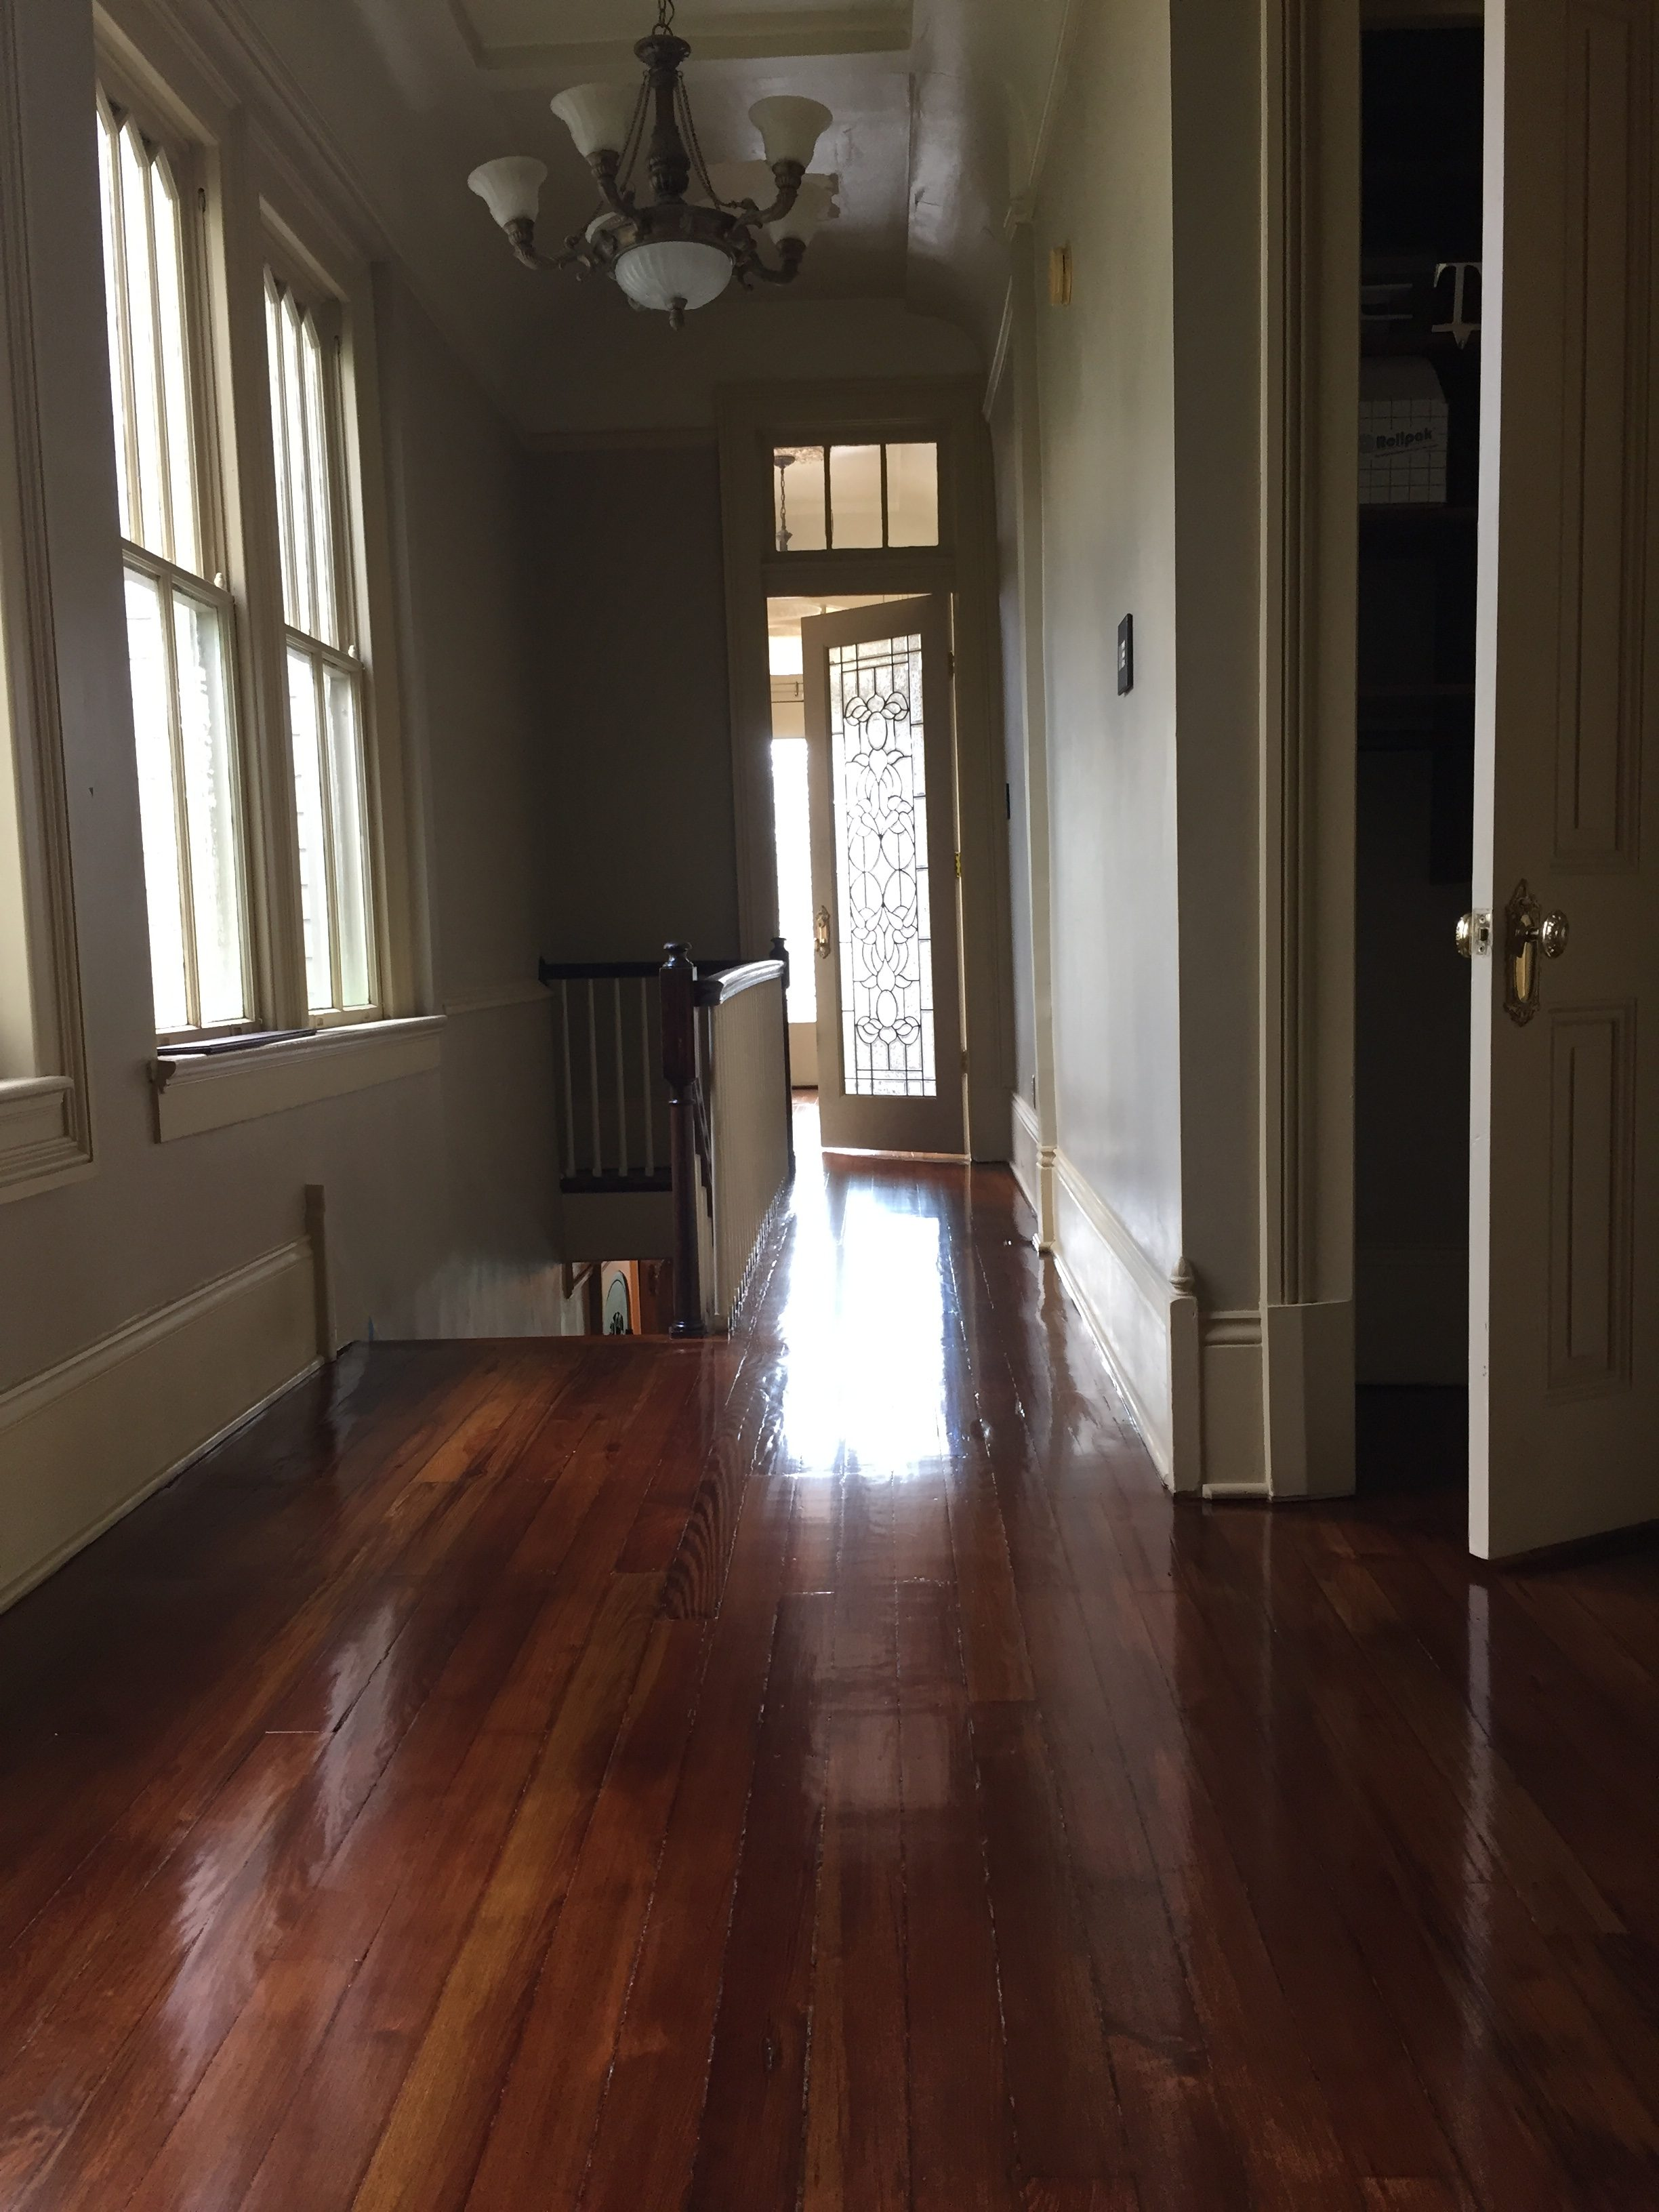 This is a hallway with a staircase of refinished glossy pine floors.